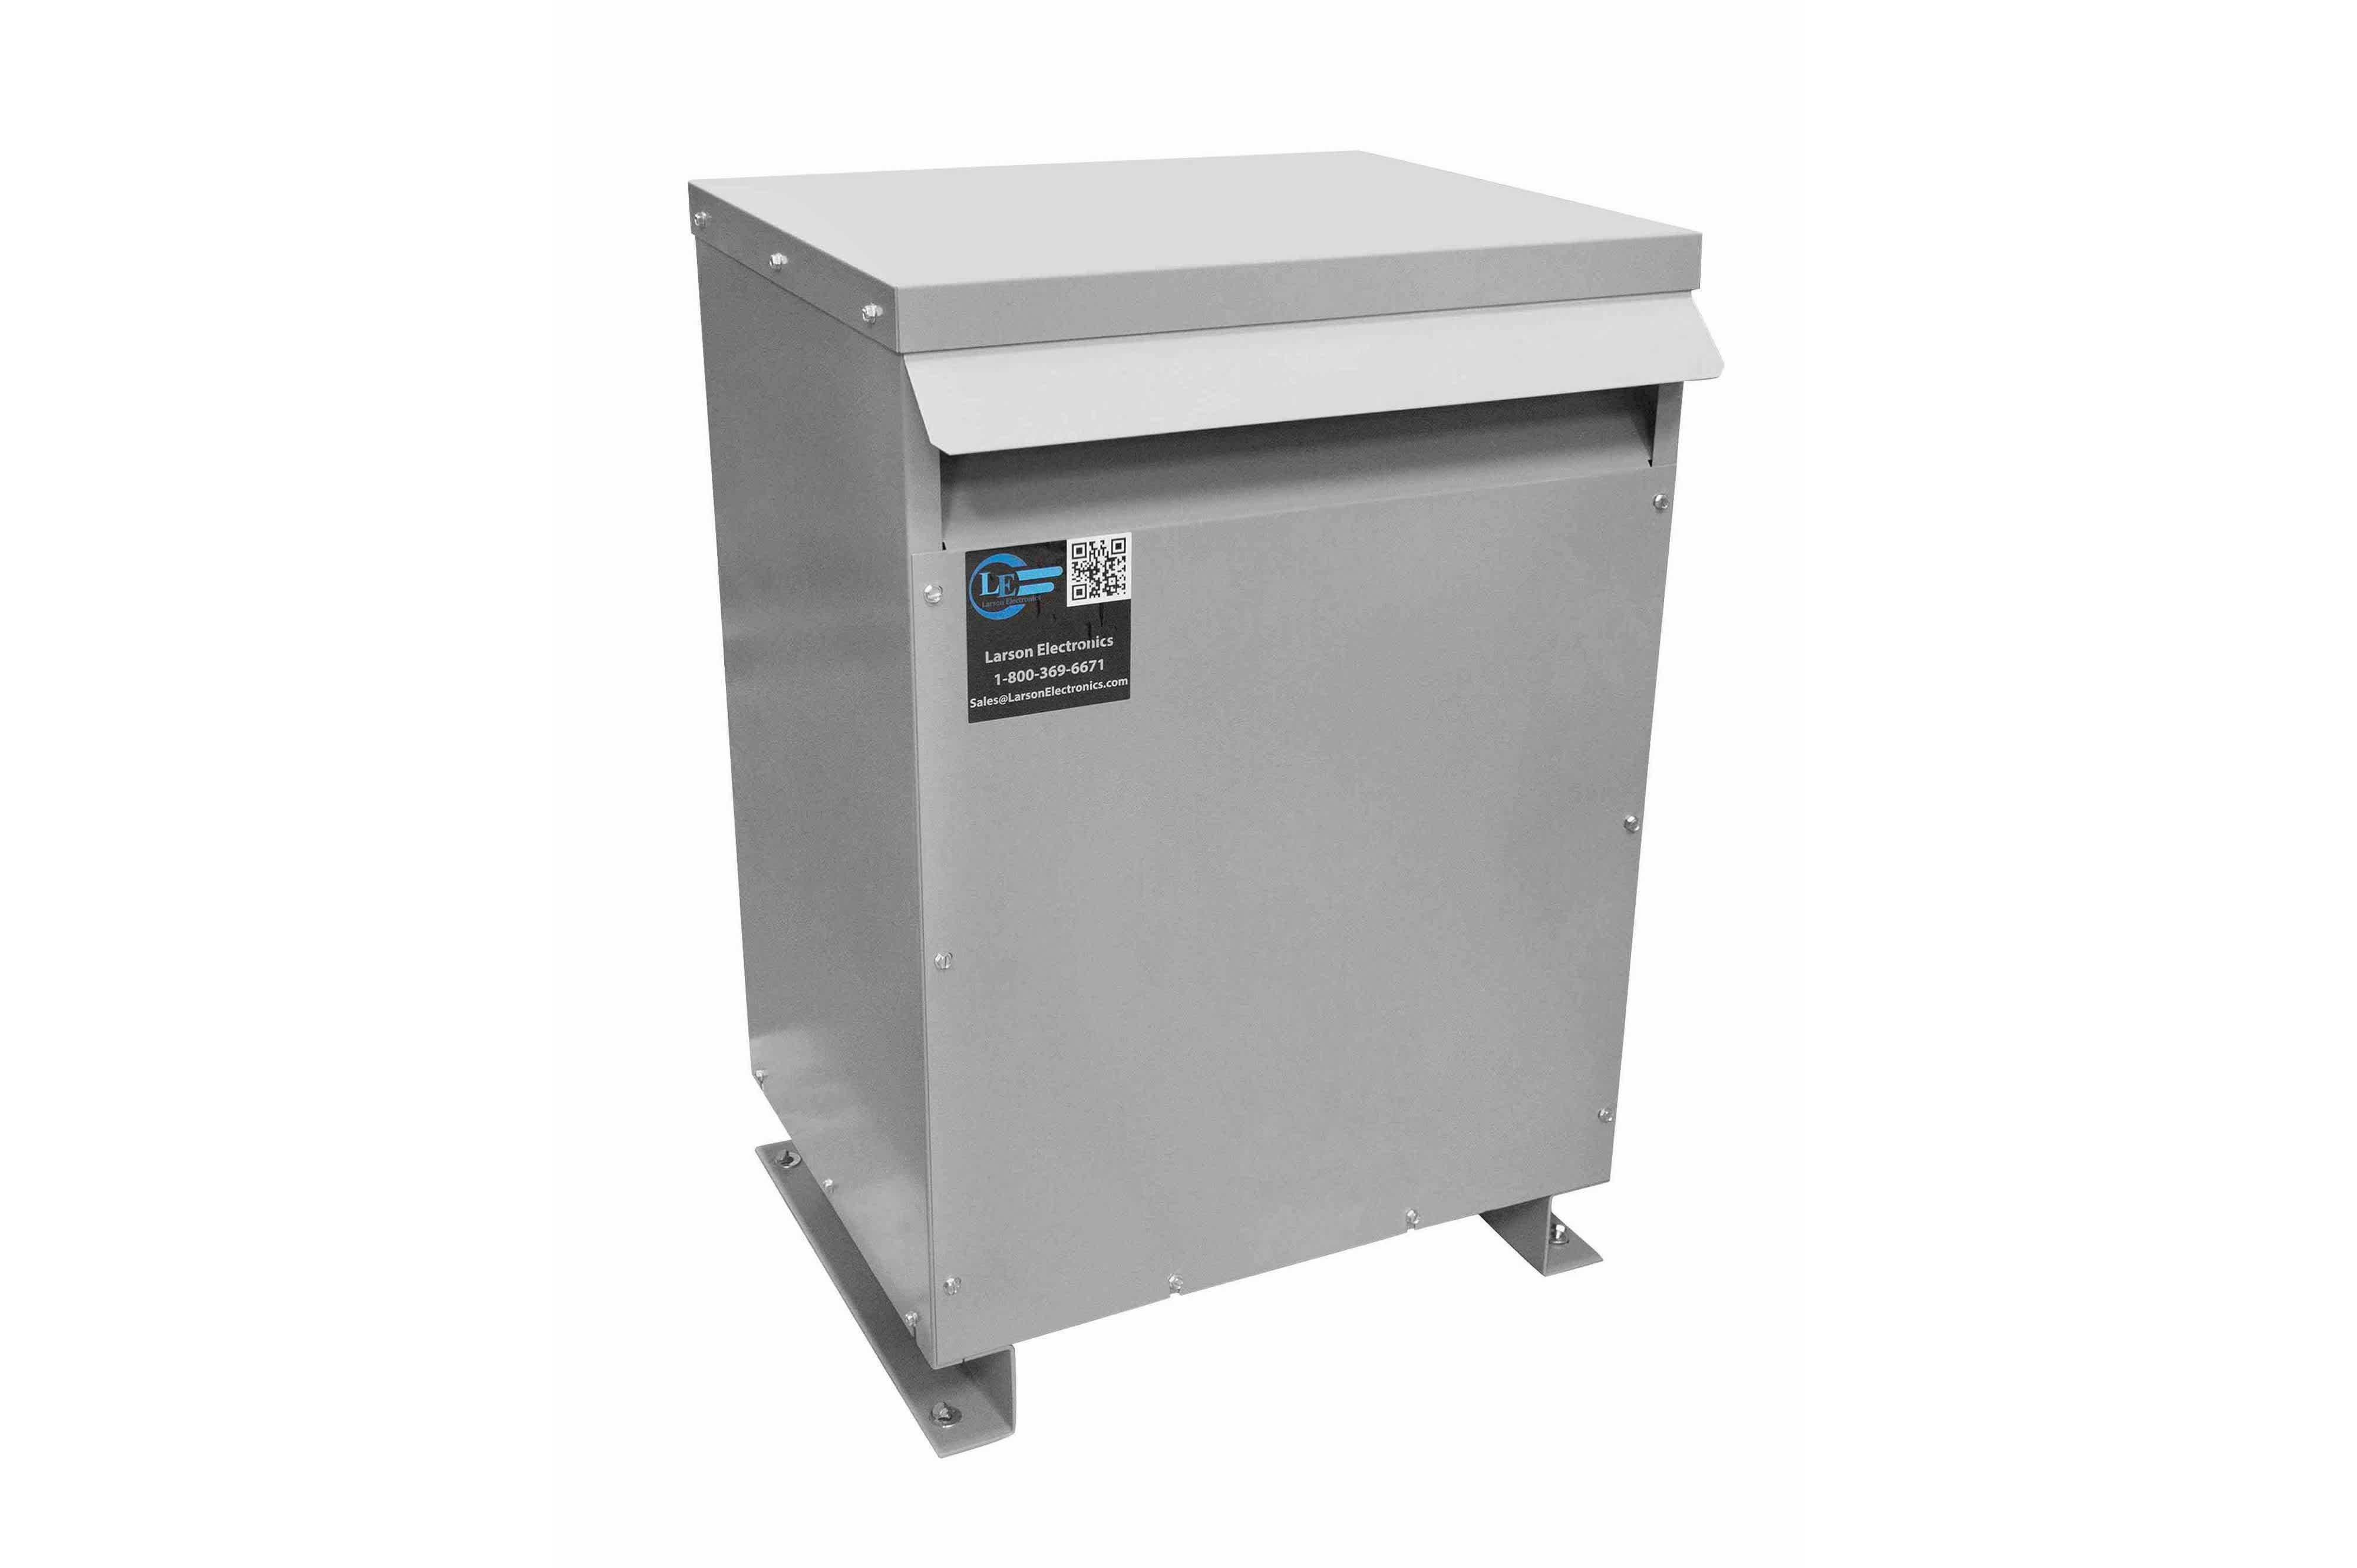 38 kVA 3PH DOE Transformer, 380V Delta Primary, 600Y/347 Wye-N Secondary, N3R, Ventilated, 60 Hz